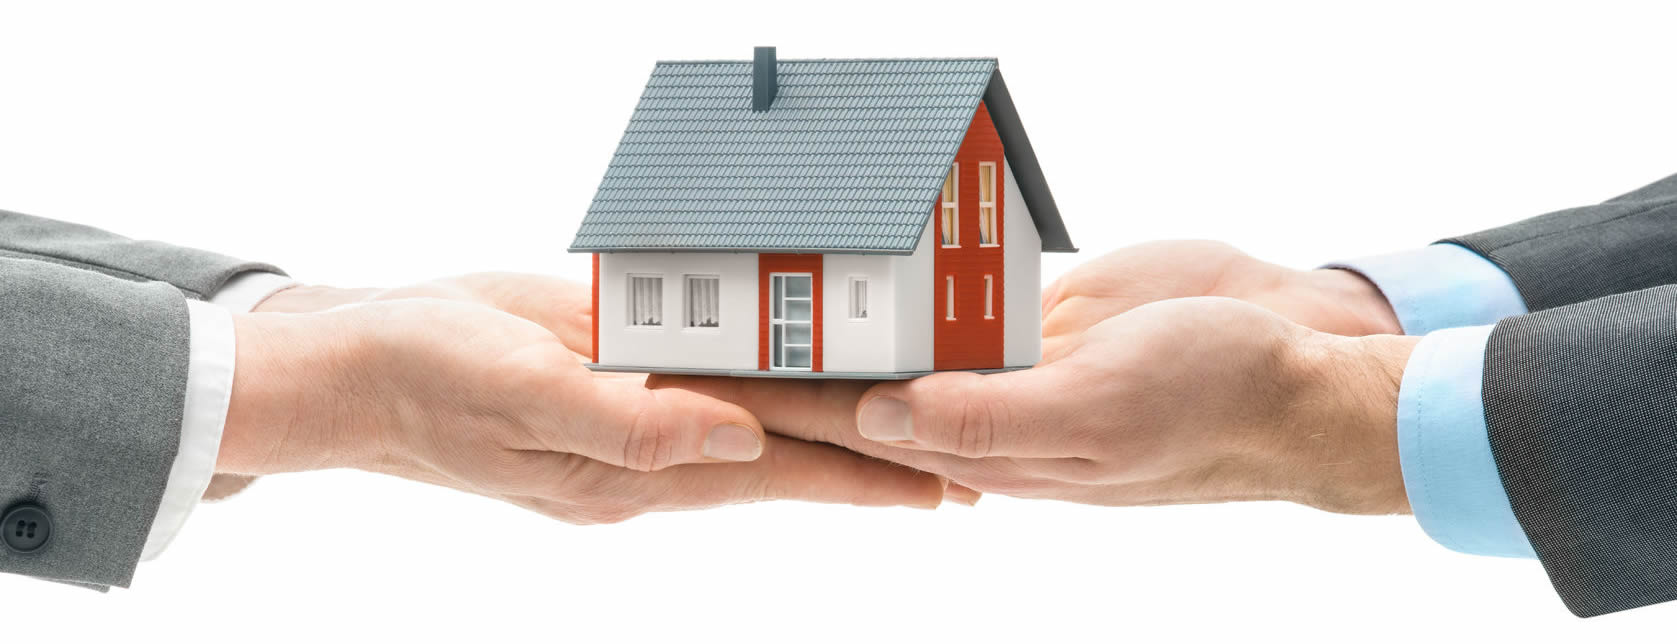 All You Need to Understand Regarding Cash For Houses in Jacksonville Offer